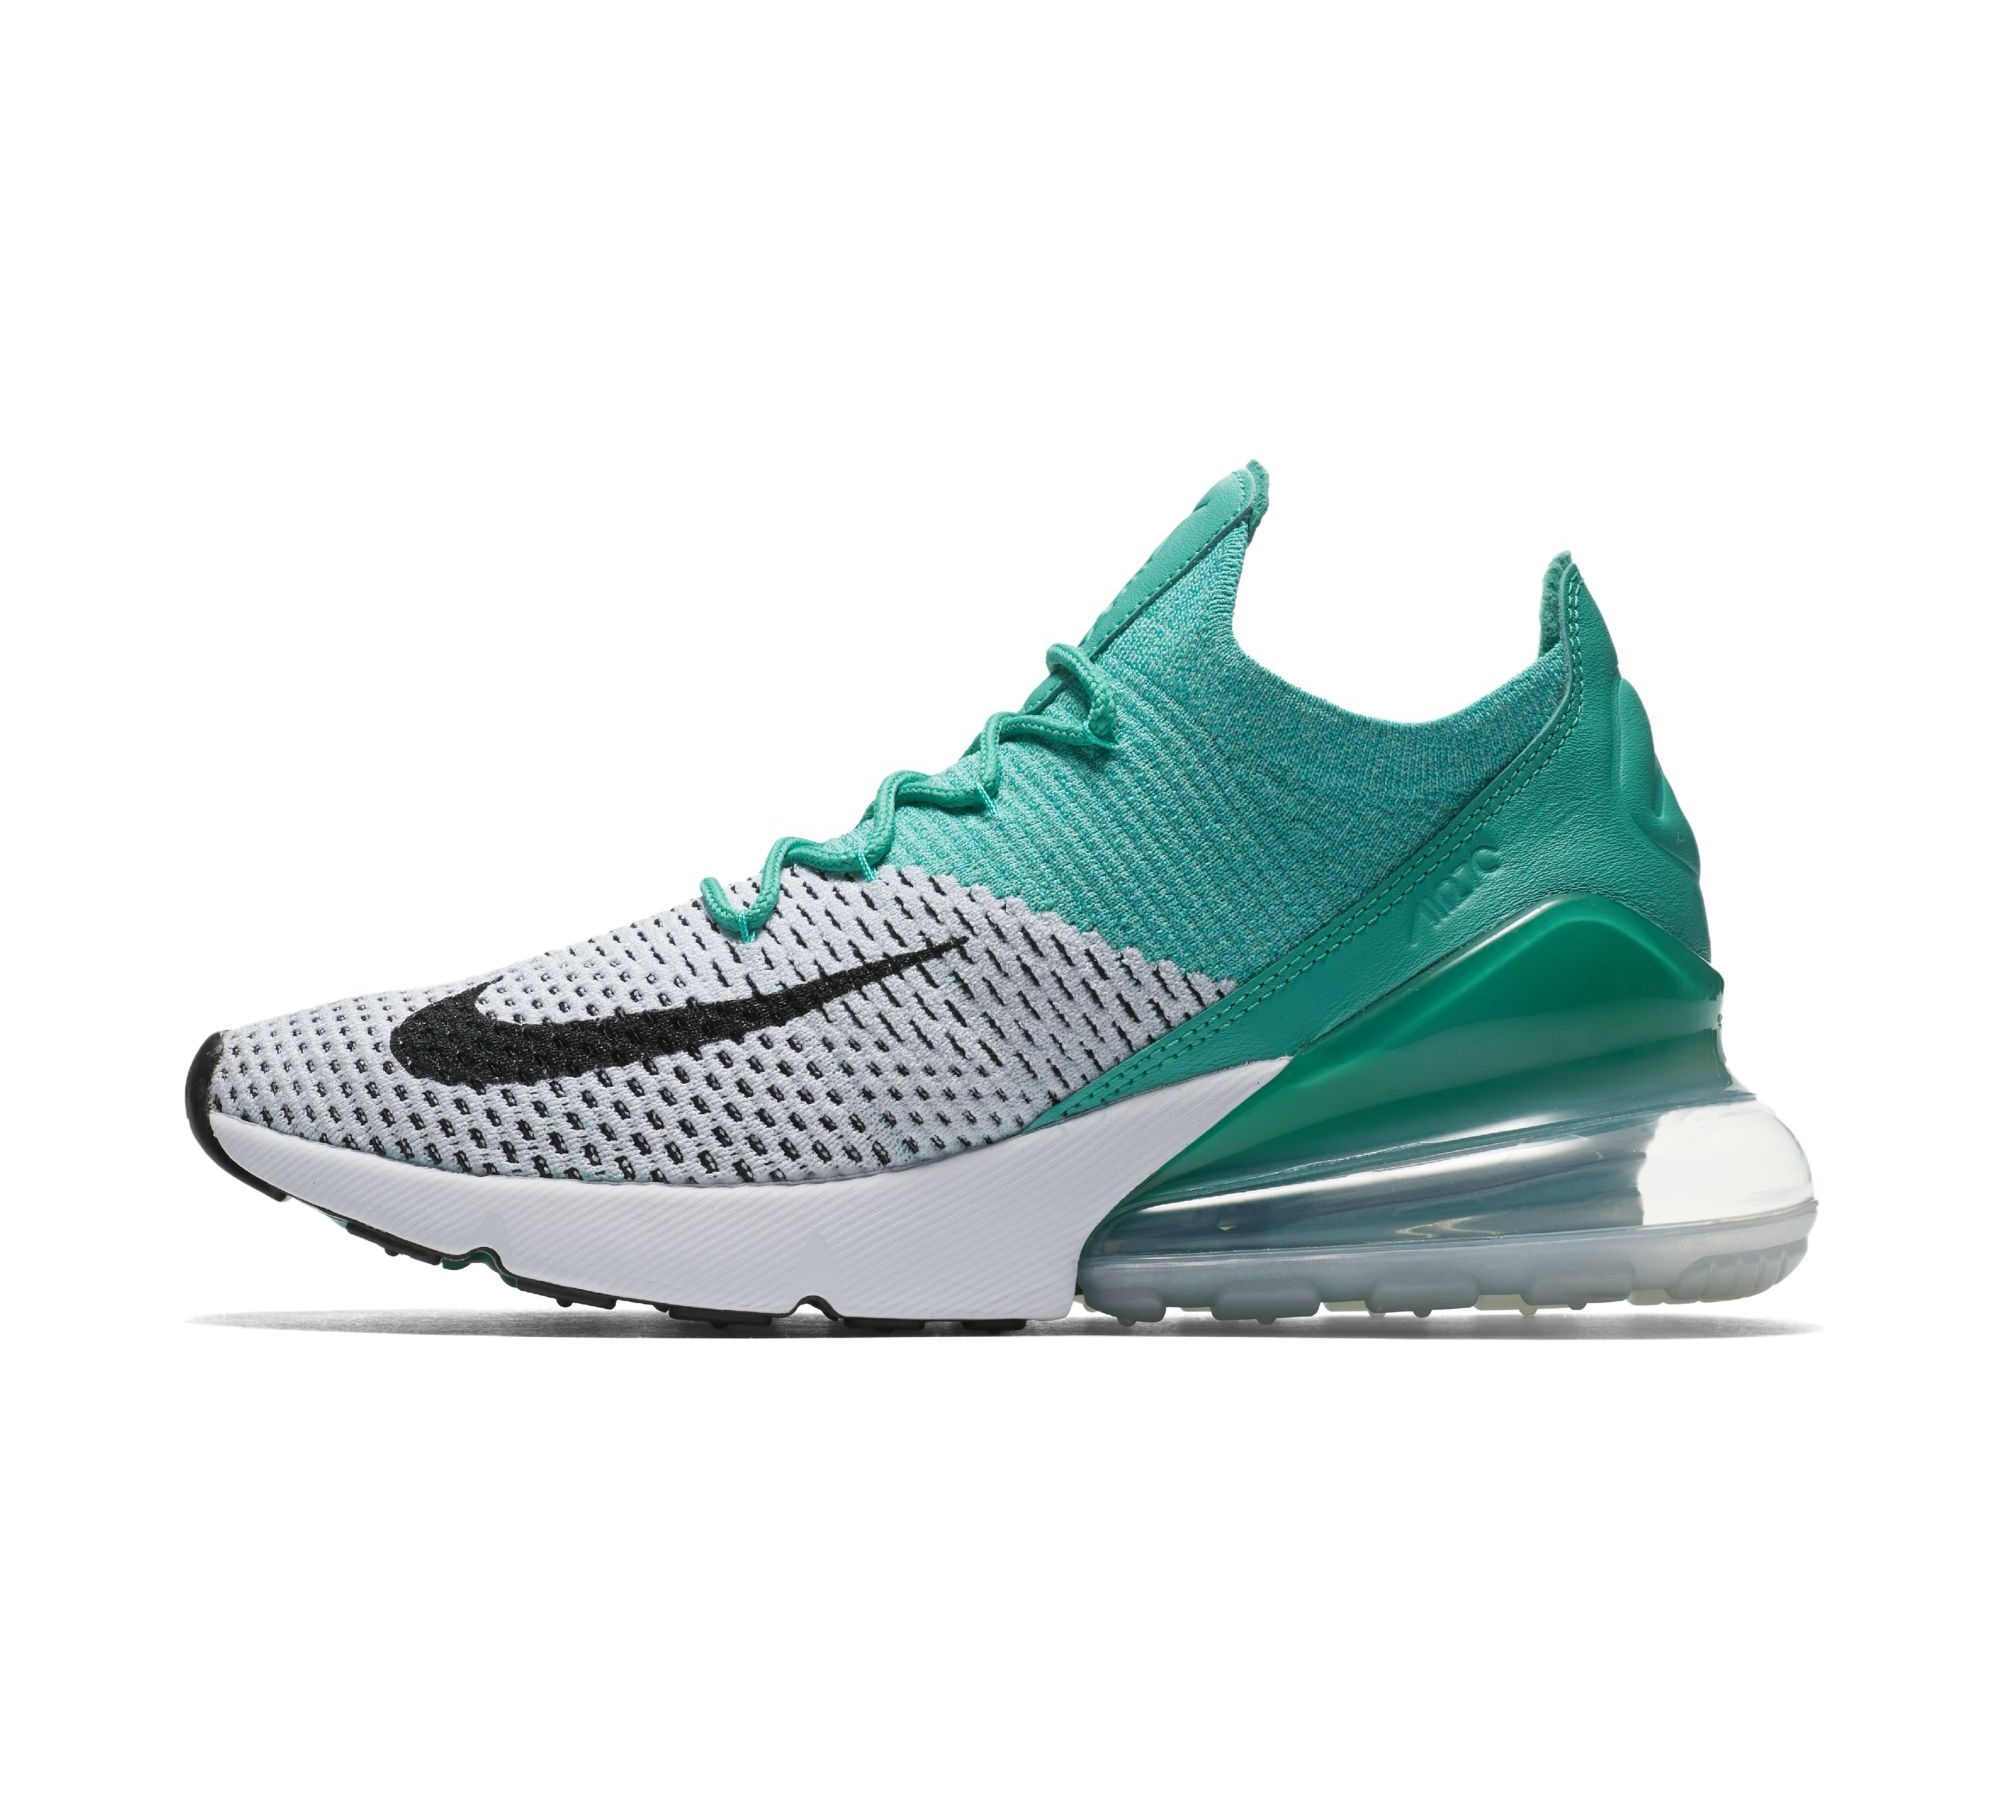 online store e6f4d f886e Nike Air Max 270 Flyknit Builds Arrive Next Week, Ahead of ...